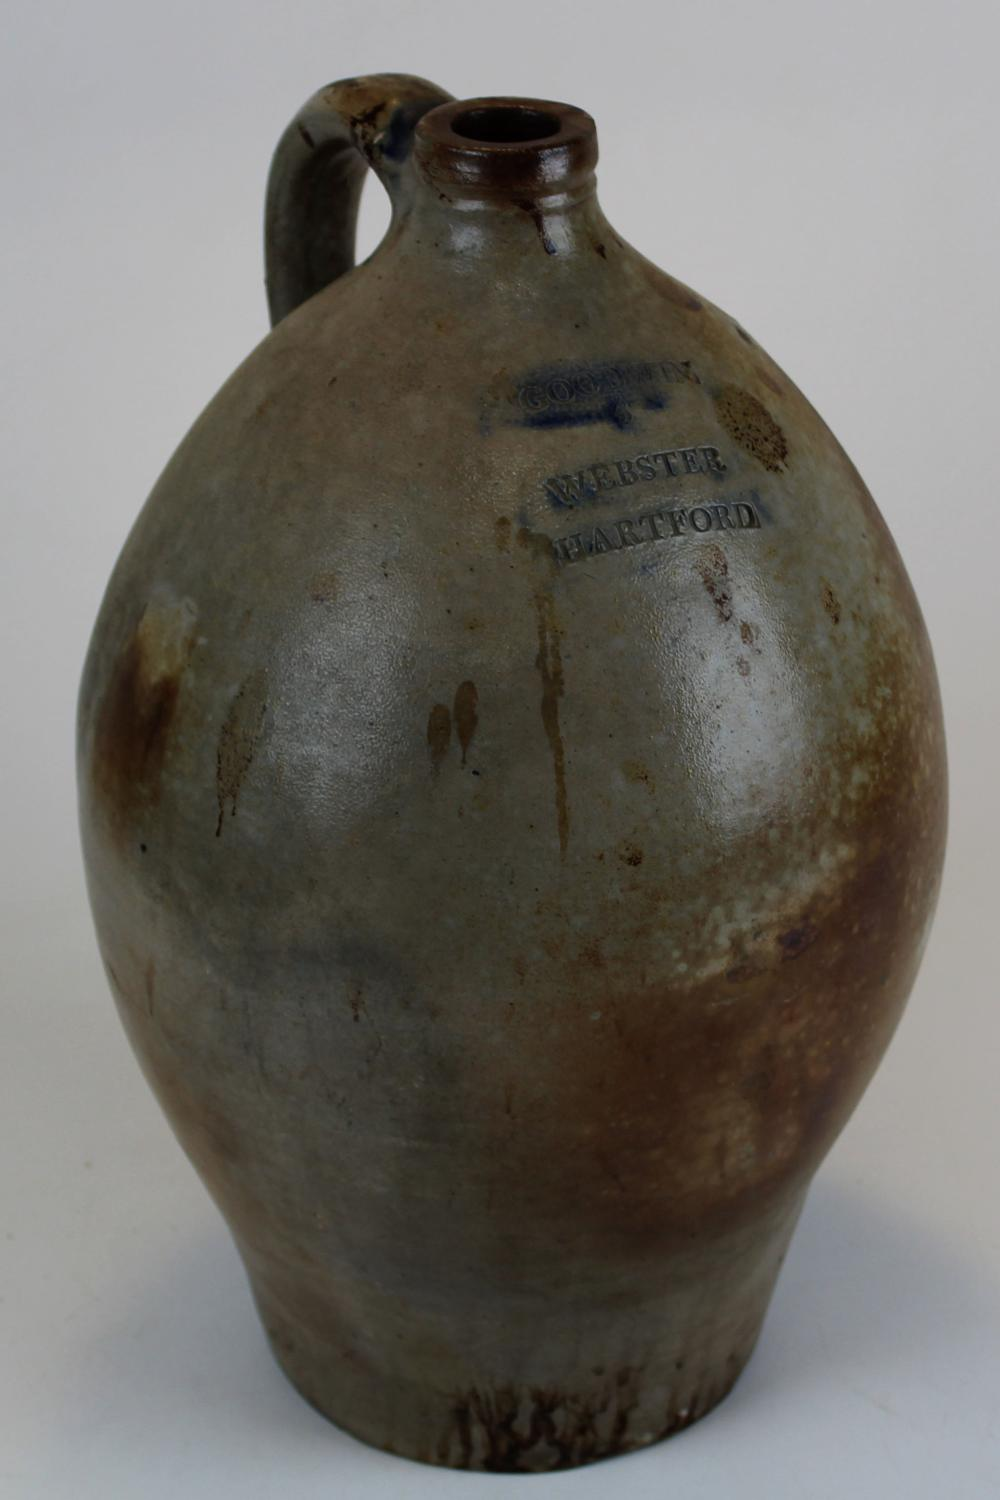 Goodwin and Webster, Hartford, CT approx. 2-3 gallon ovoid stoneware jug.